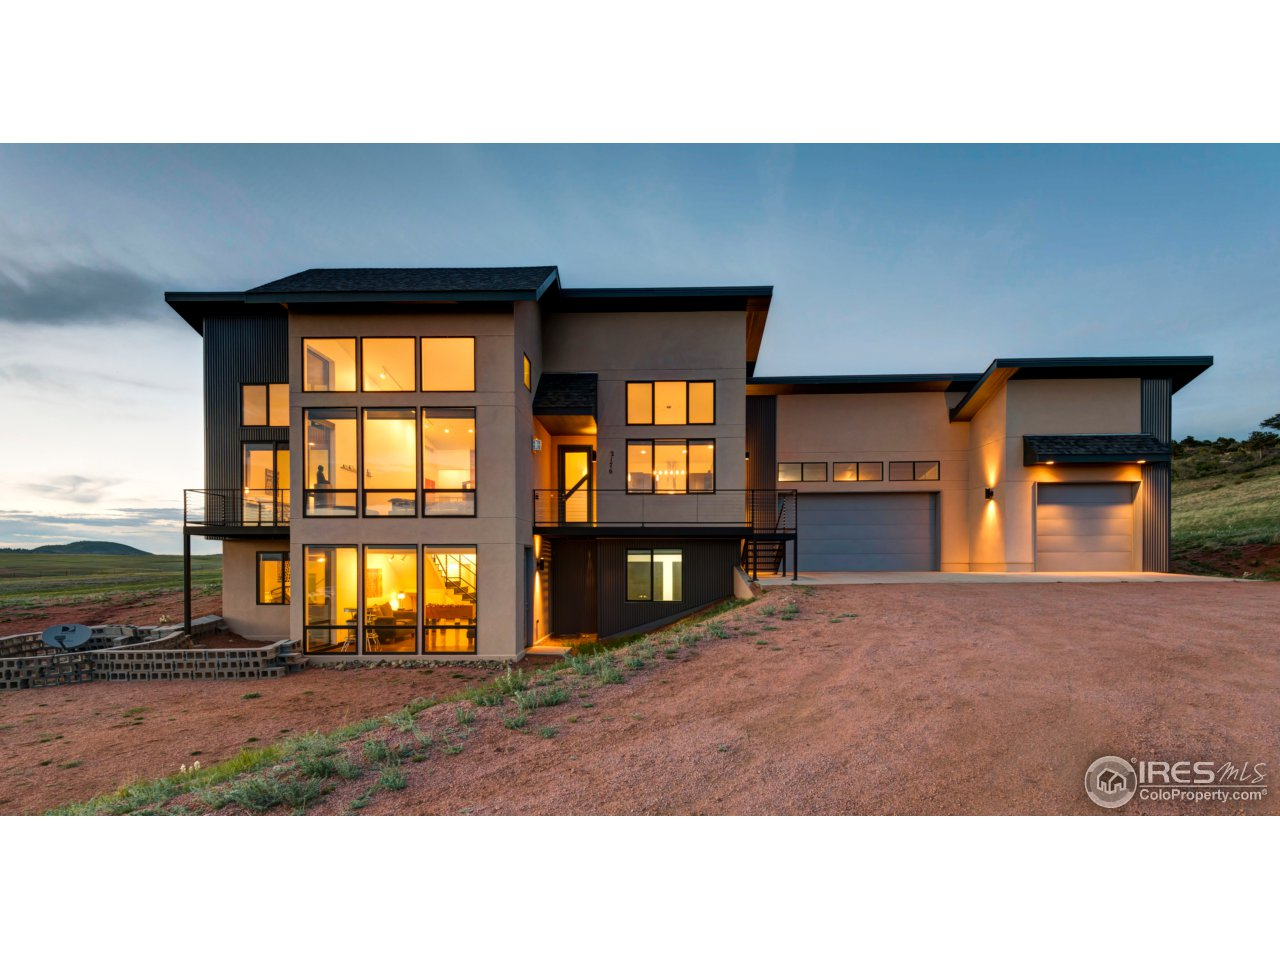 2176 Great Twins Rd, Livermore, CO 80536